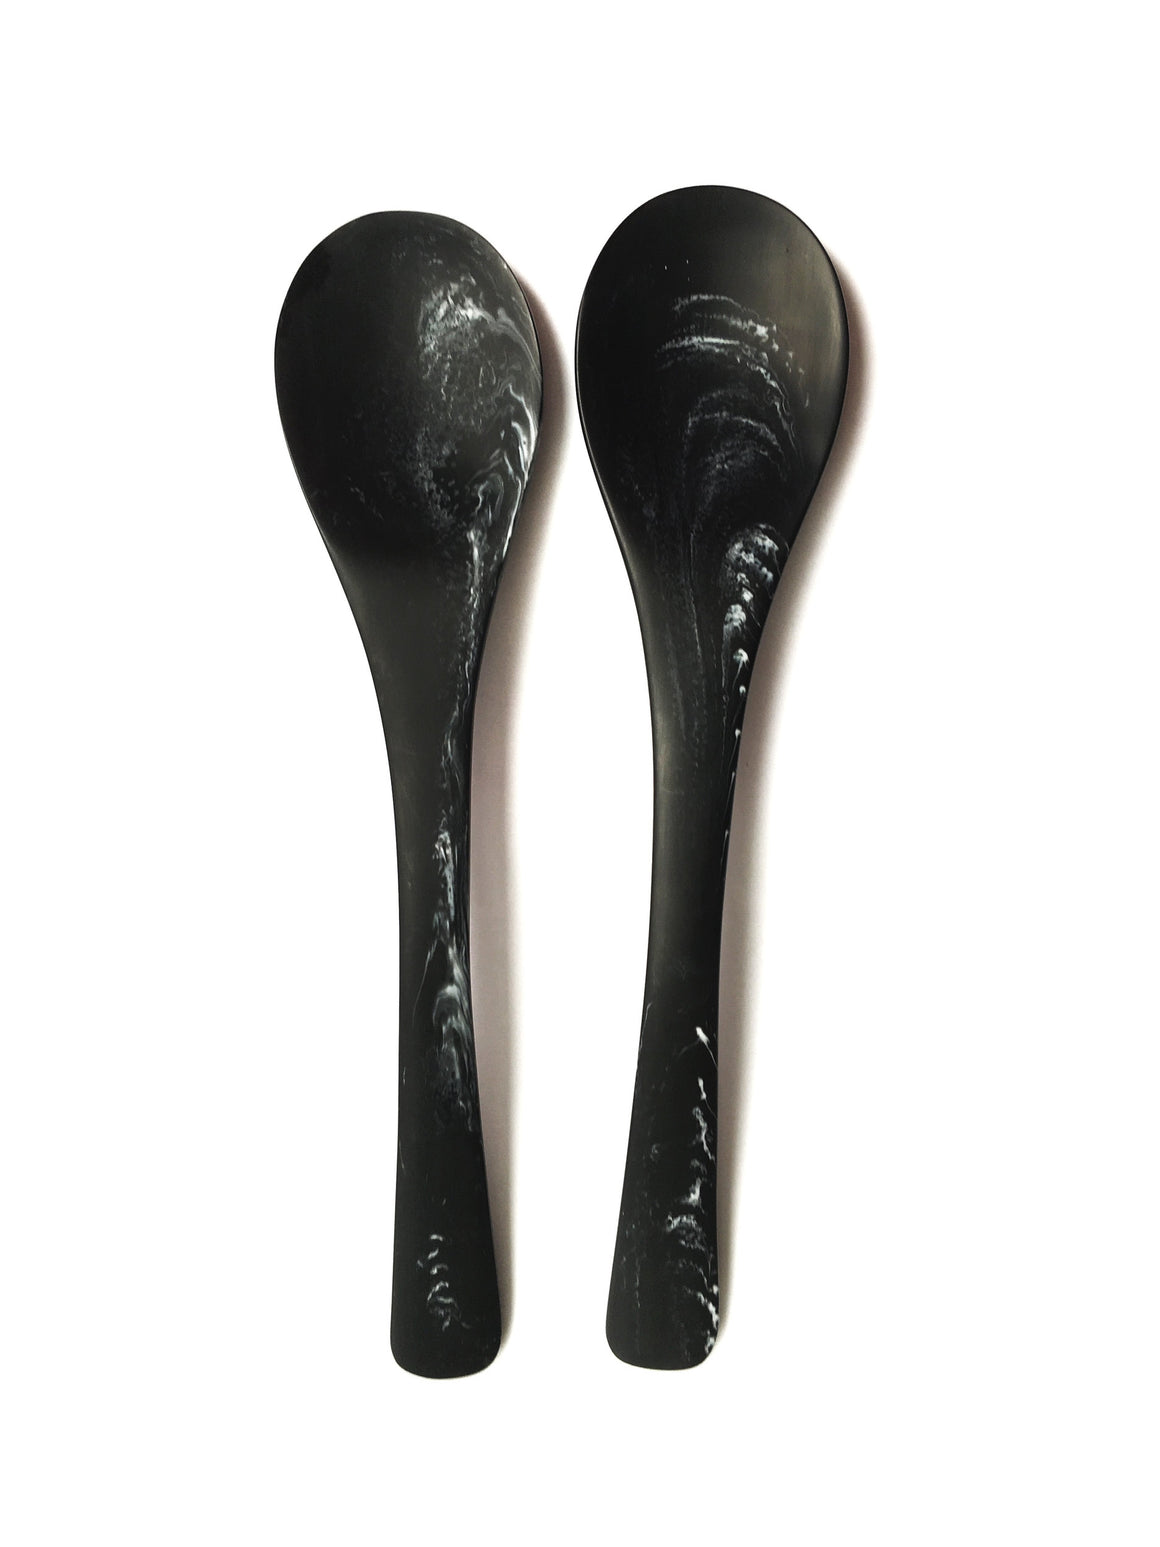 Set of Storm Resin Serving Spoons